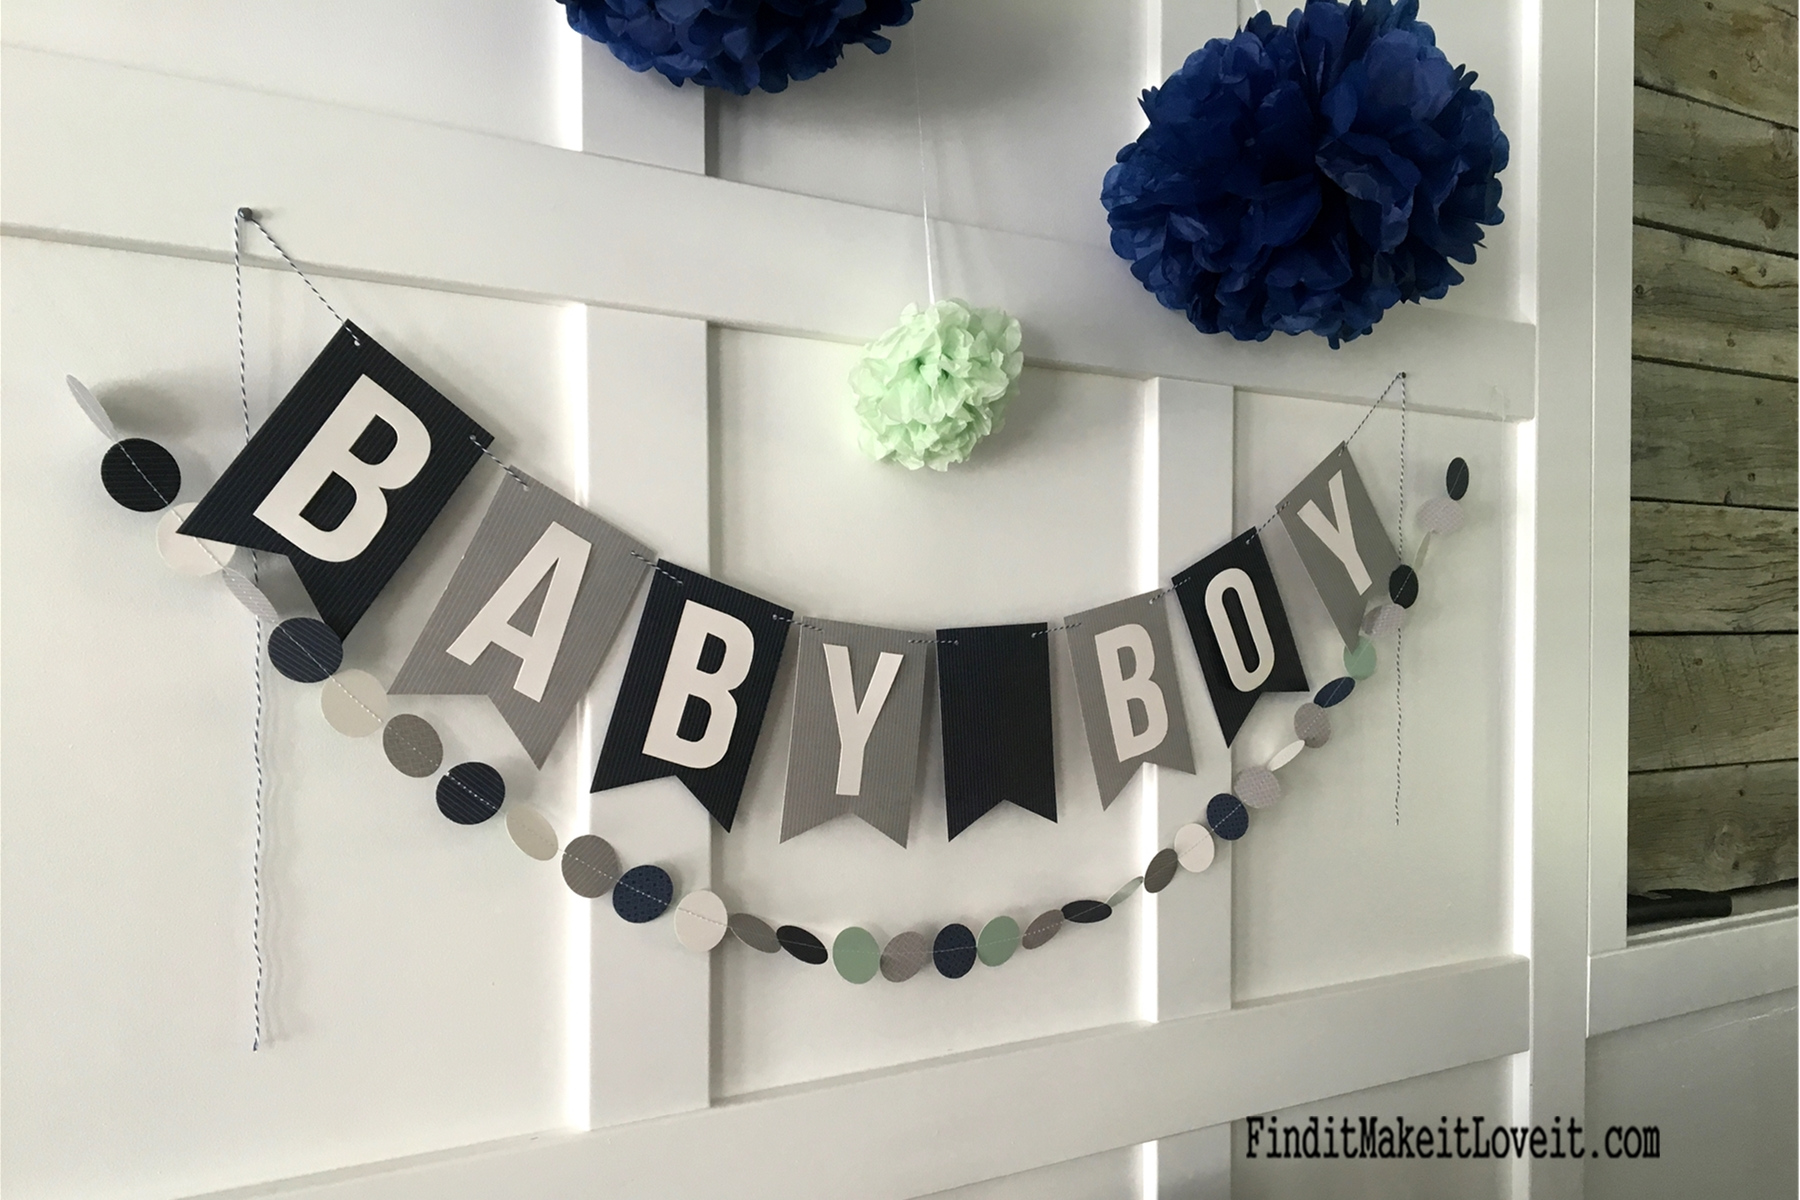 Boy Baby Shower Find it Make it Love it